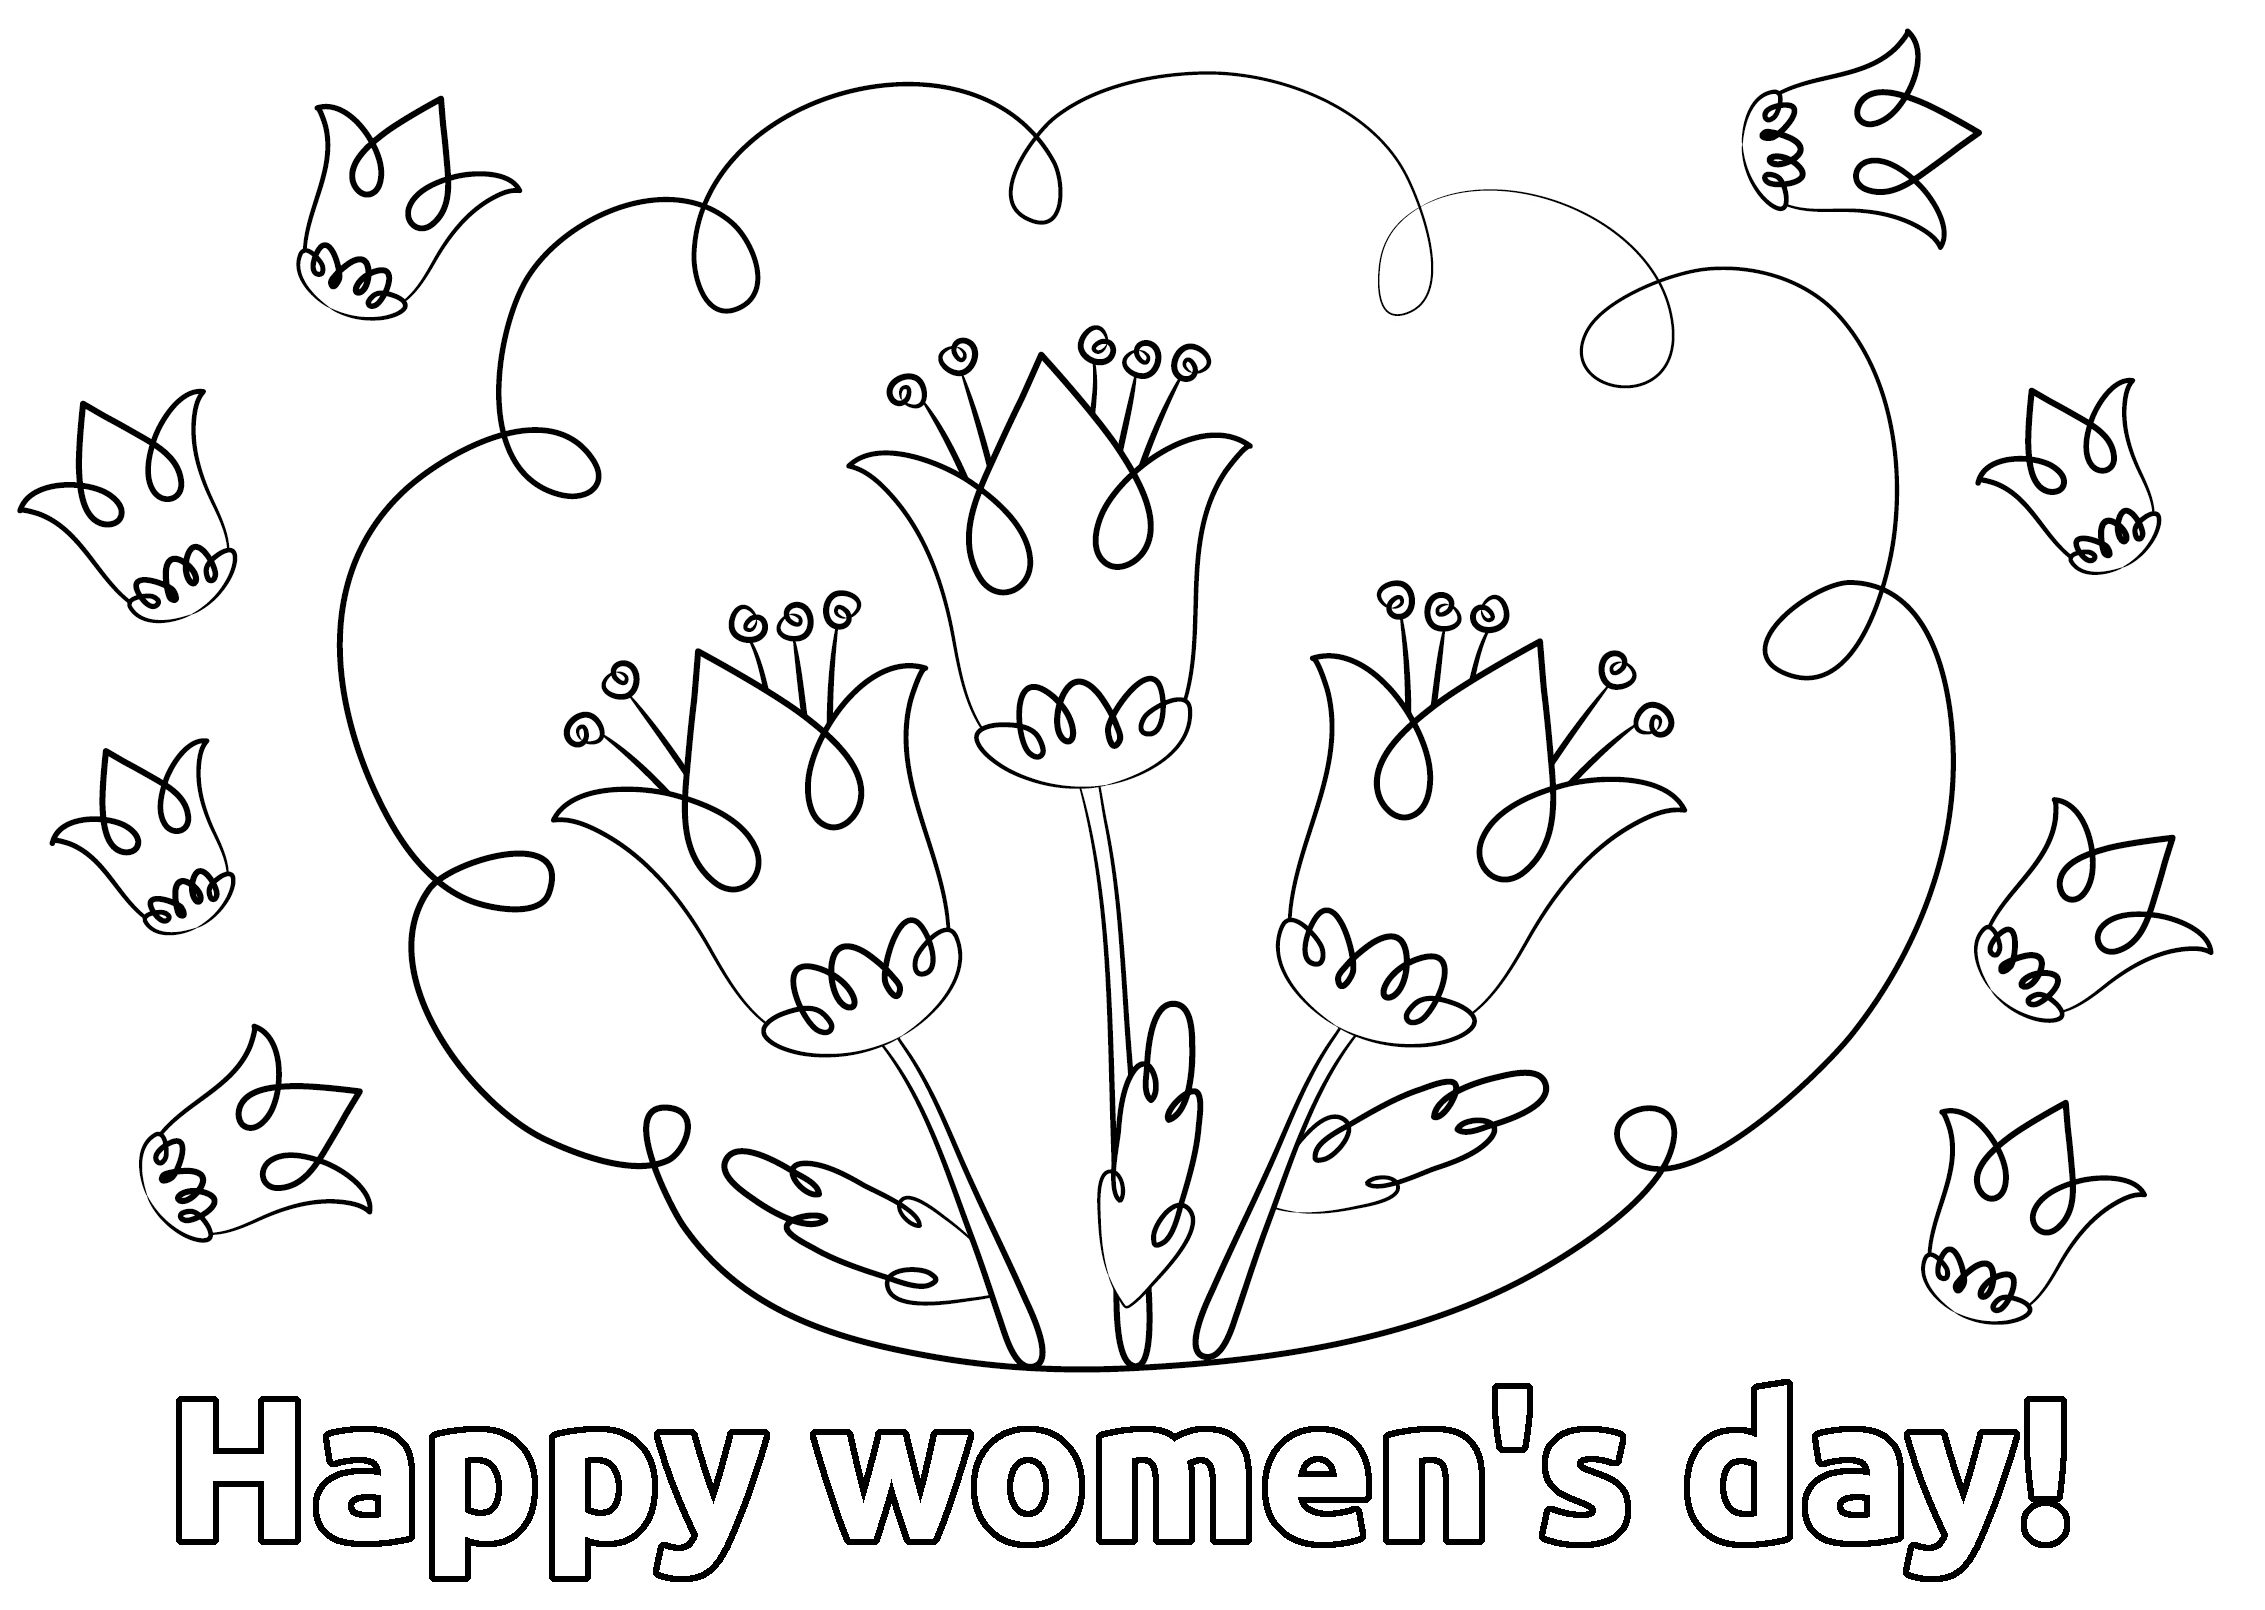 international womens day coloring pages international women39s day activities free printables womens coloring international day pages